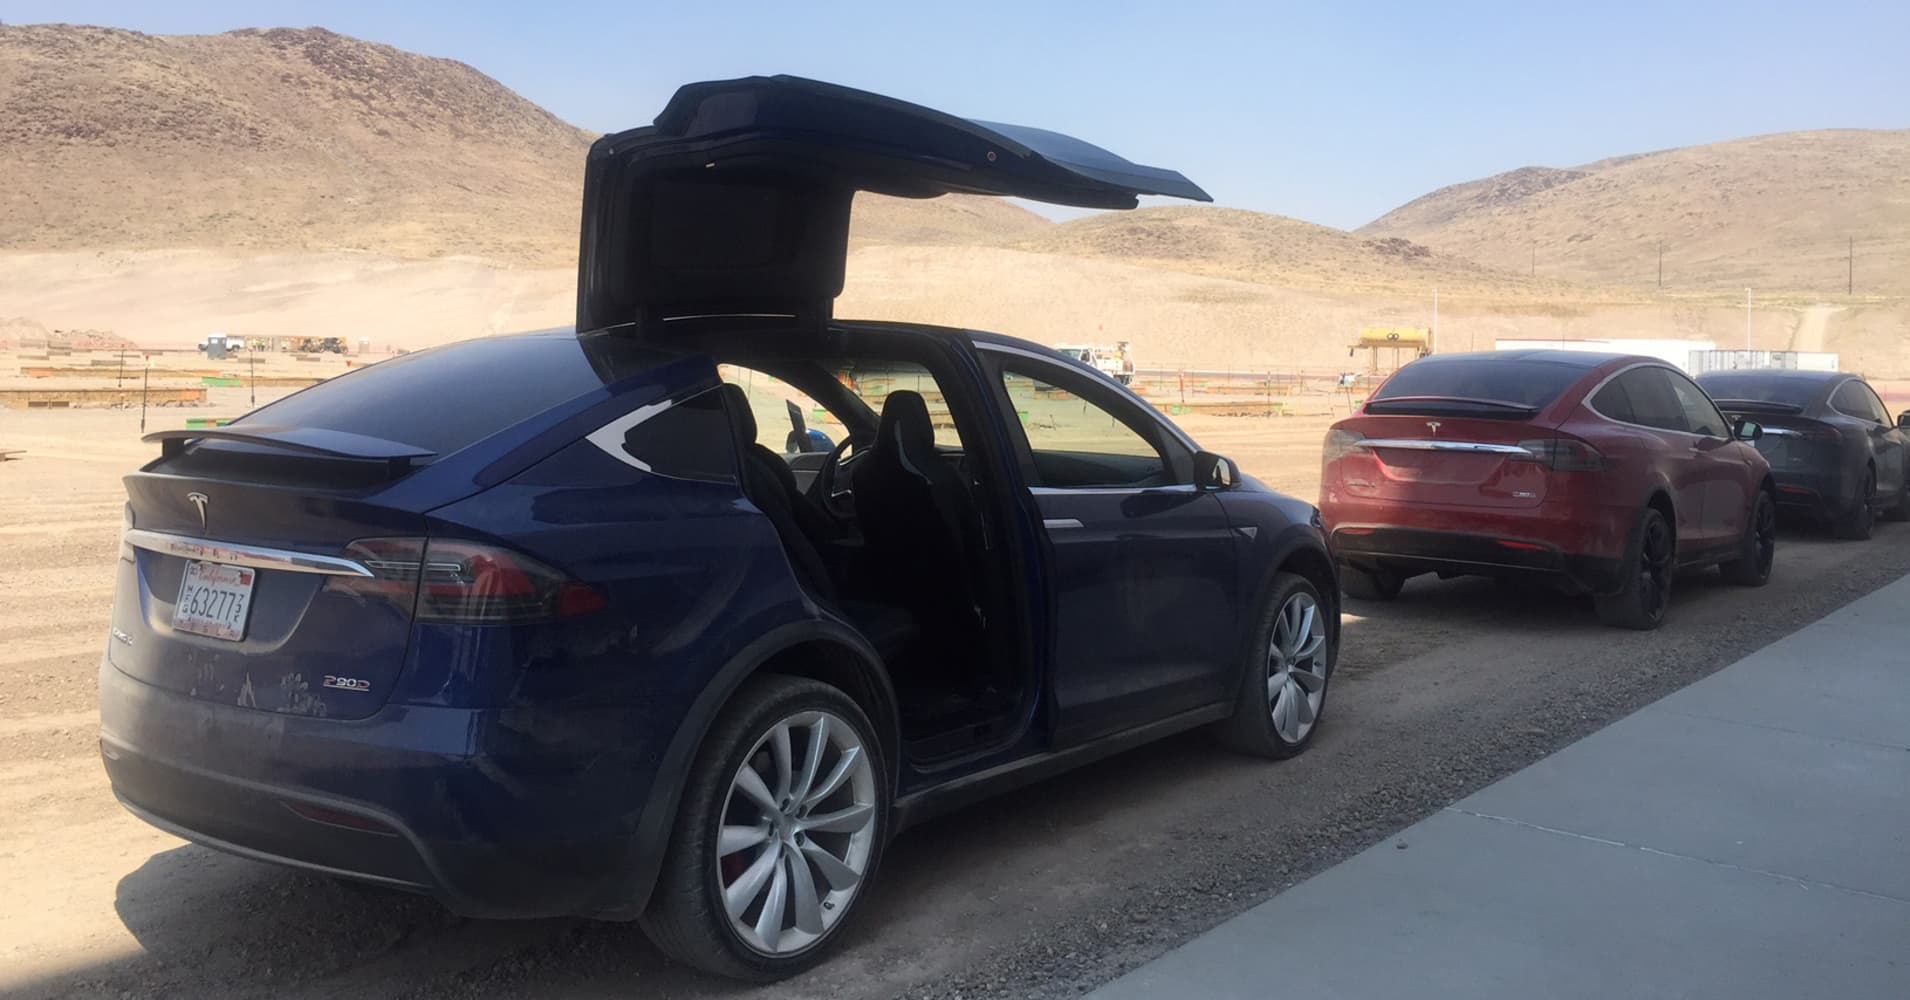 Tesla whistleblower tweets details about allegedly flawed cars, scrapped parts